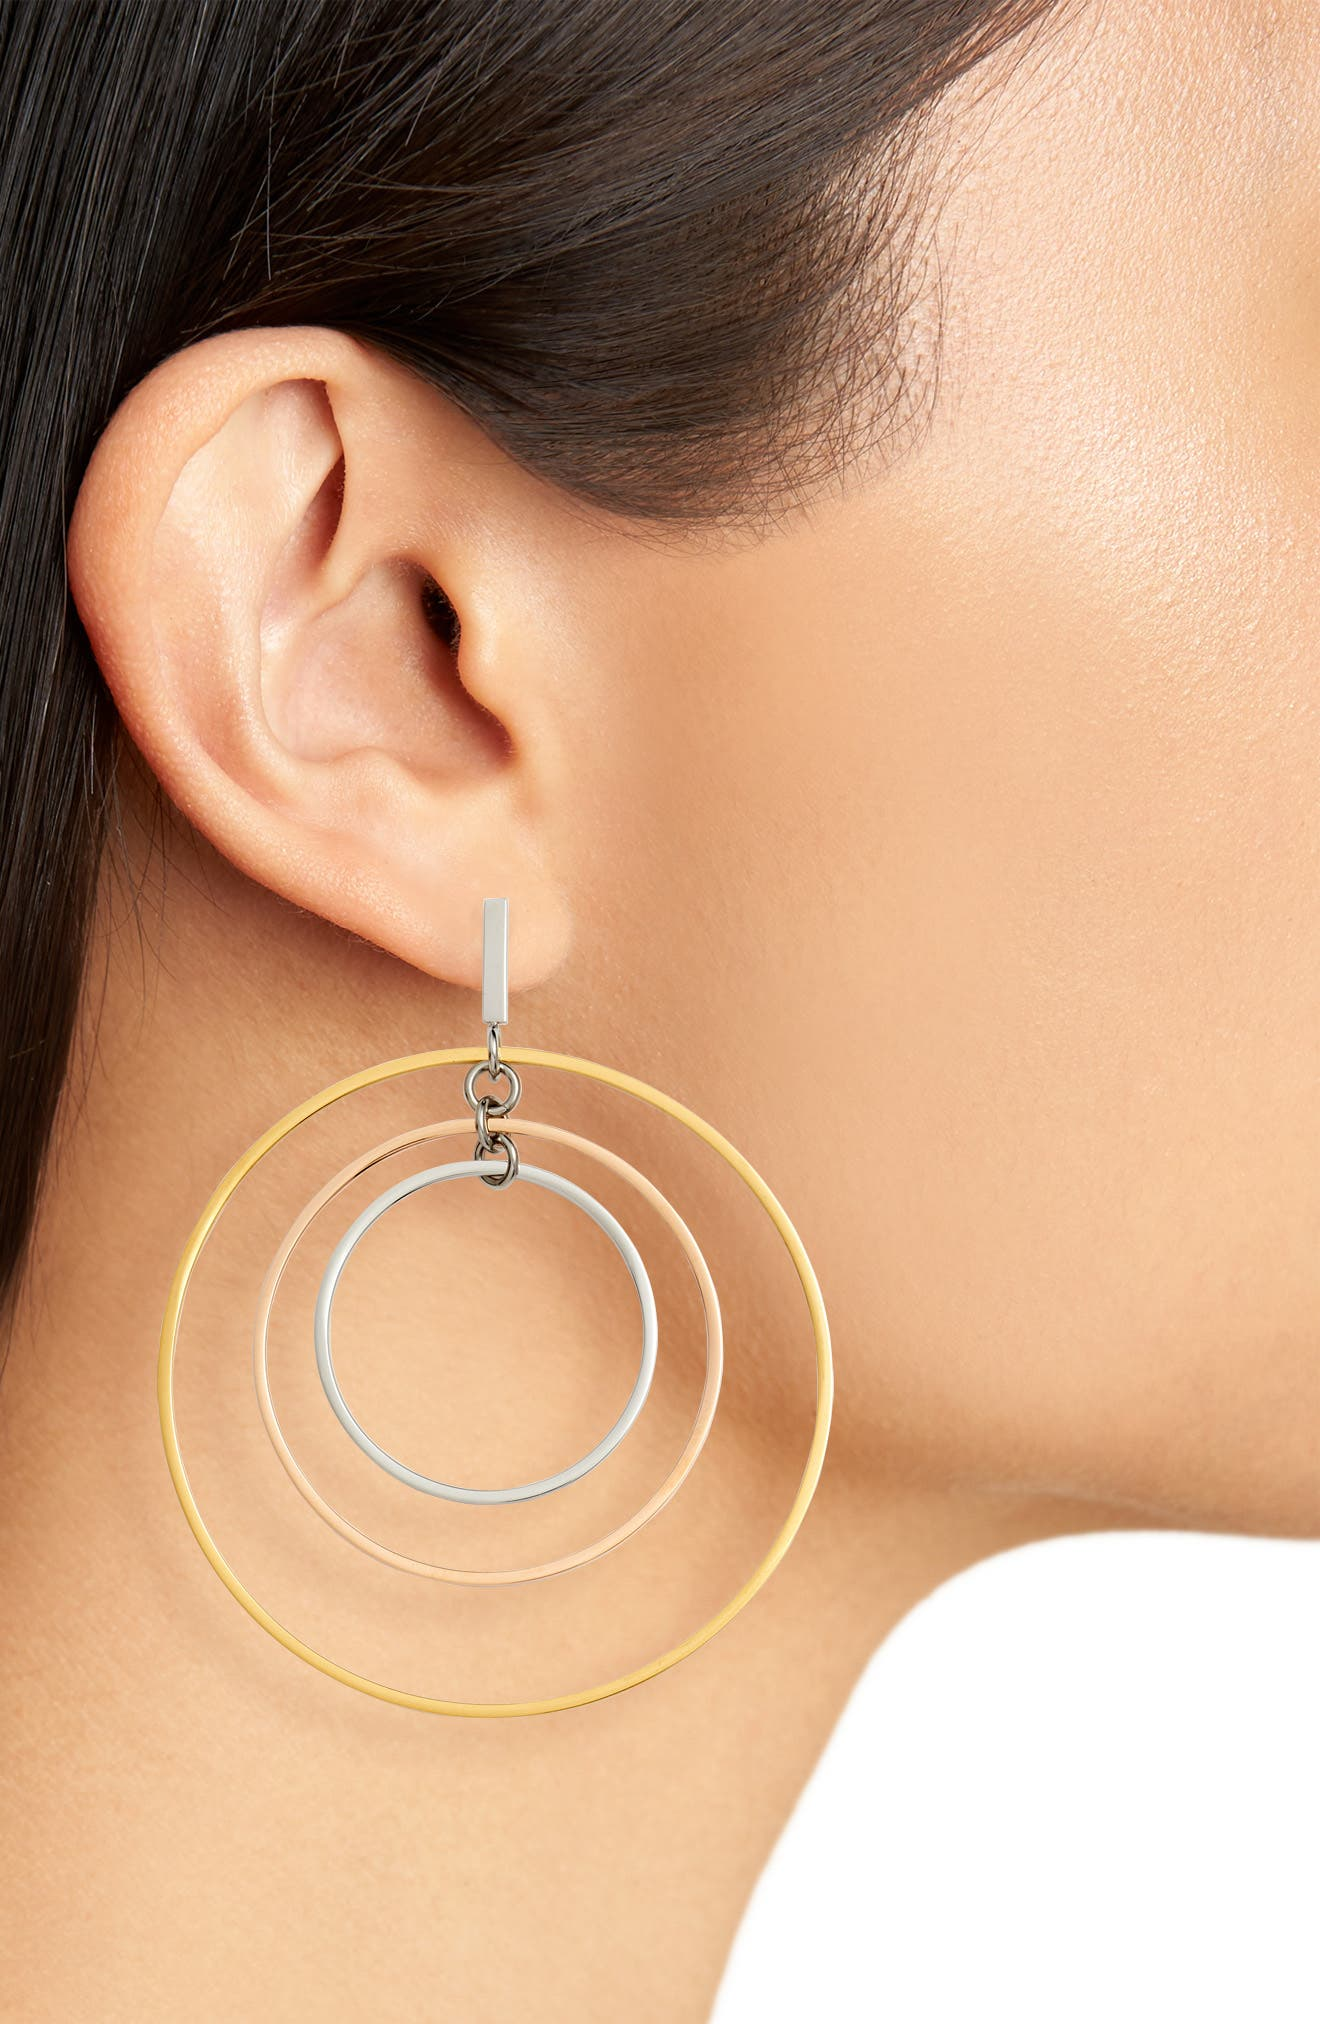 Wire Hoop Earrings,                             Alternate thumbnail 2, color,                             GOLD/ SILVER/ ROSE GOLD